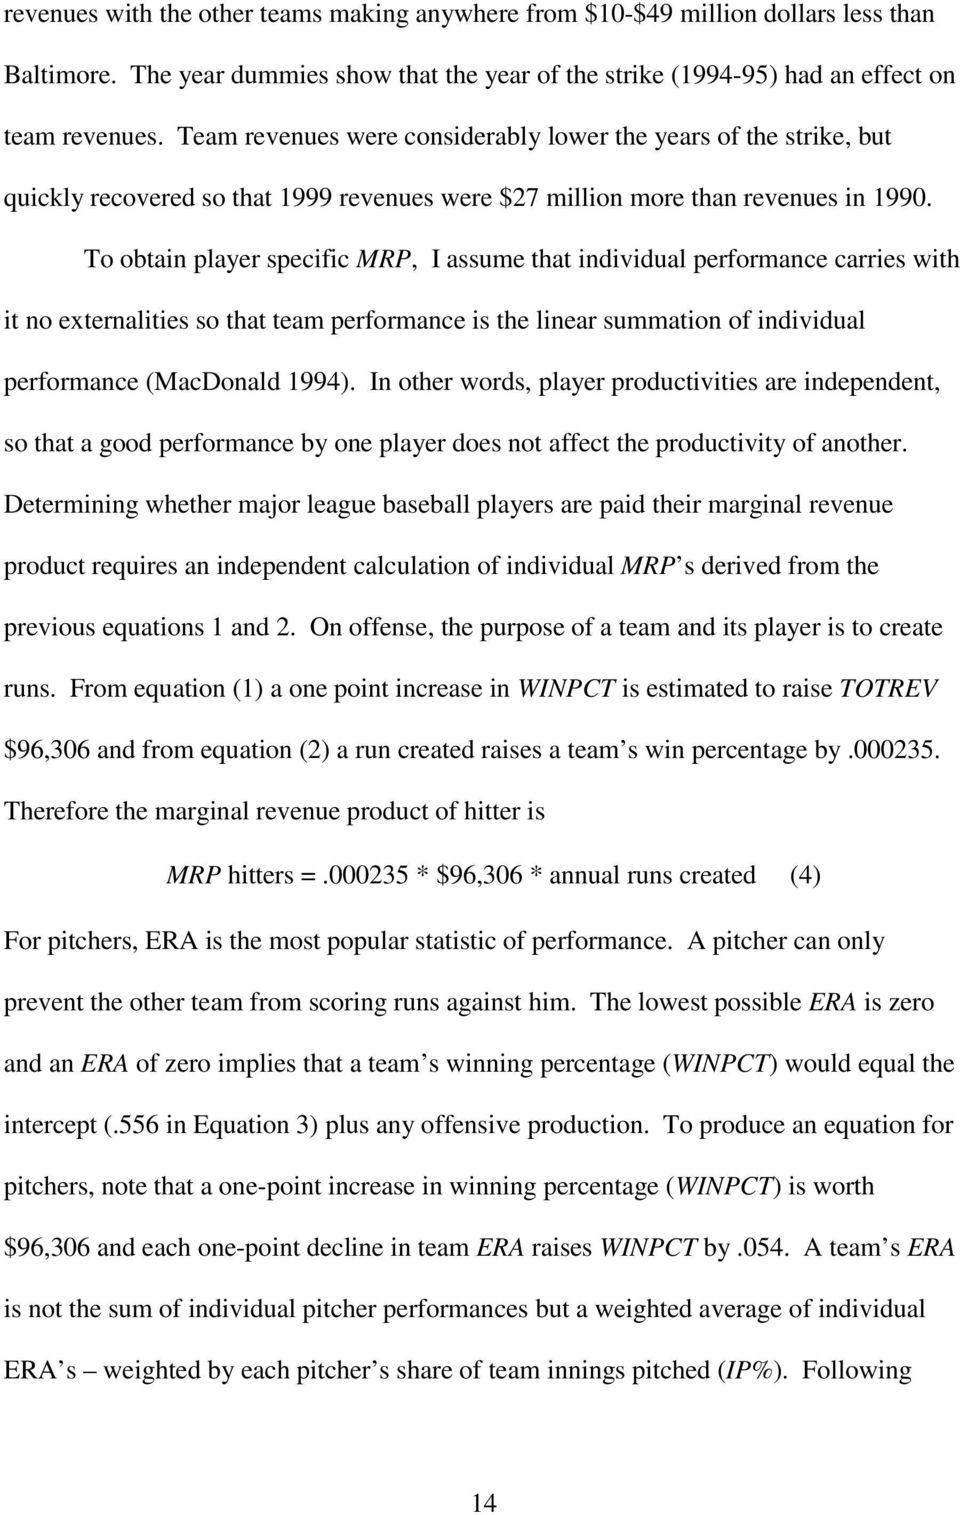 To obtain player specific MRP, I assume that individual performance carries with it no externalities so that team performance is the linear summation of individual performance (MacDonald 1994).